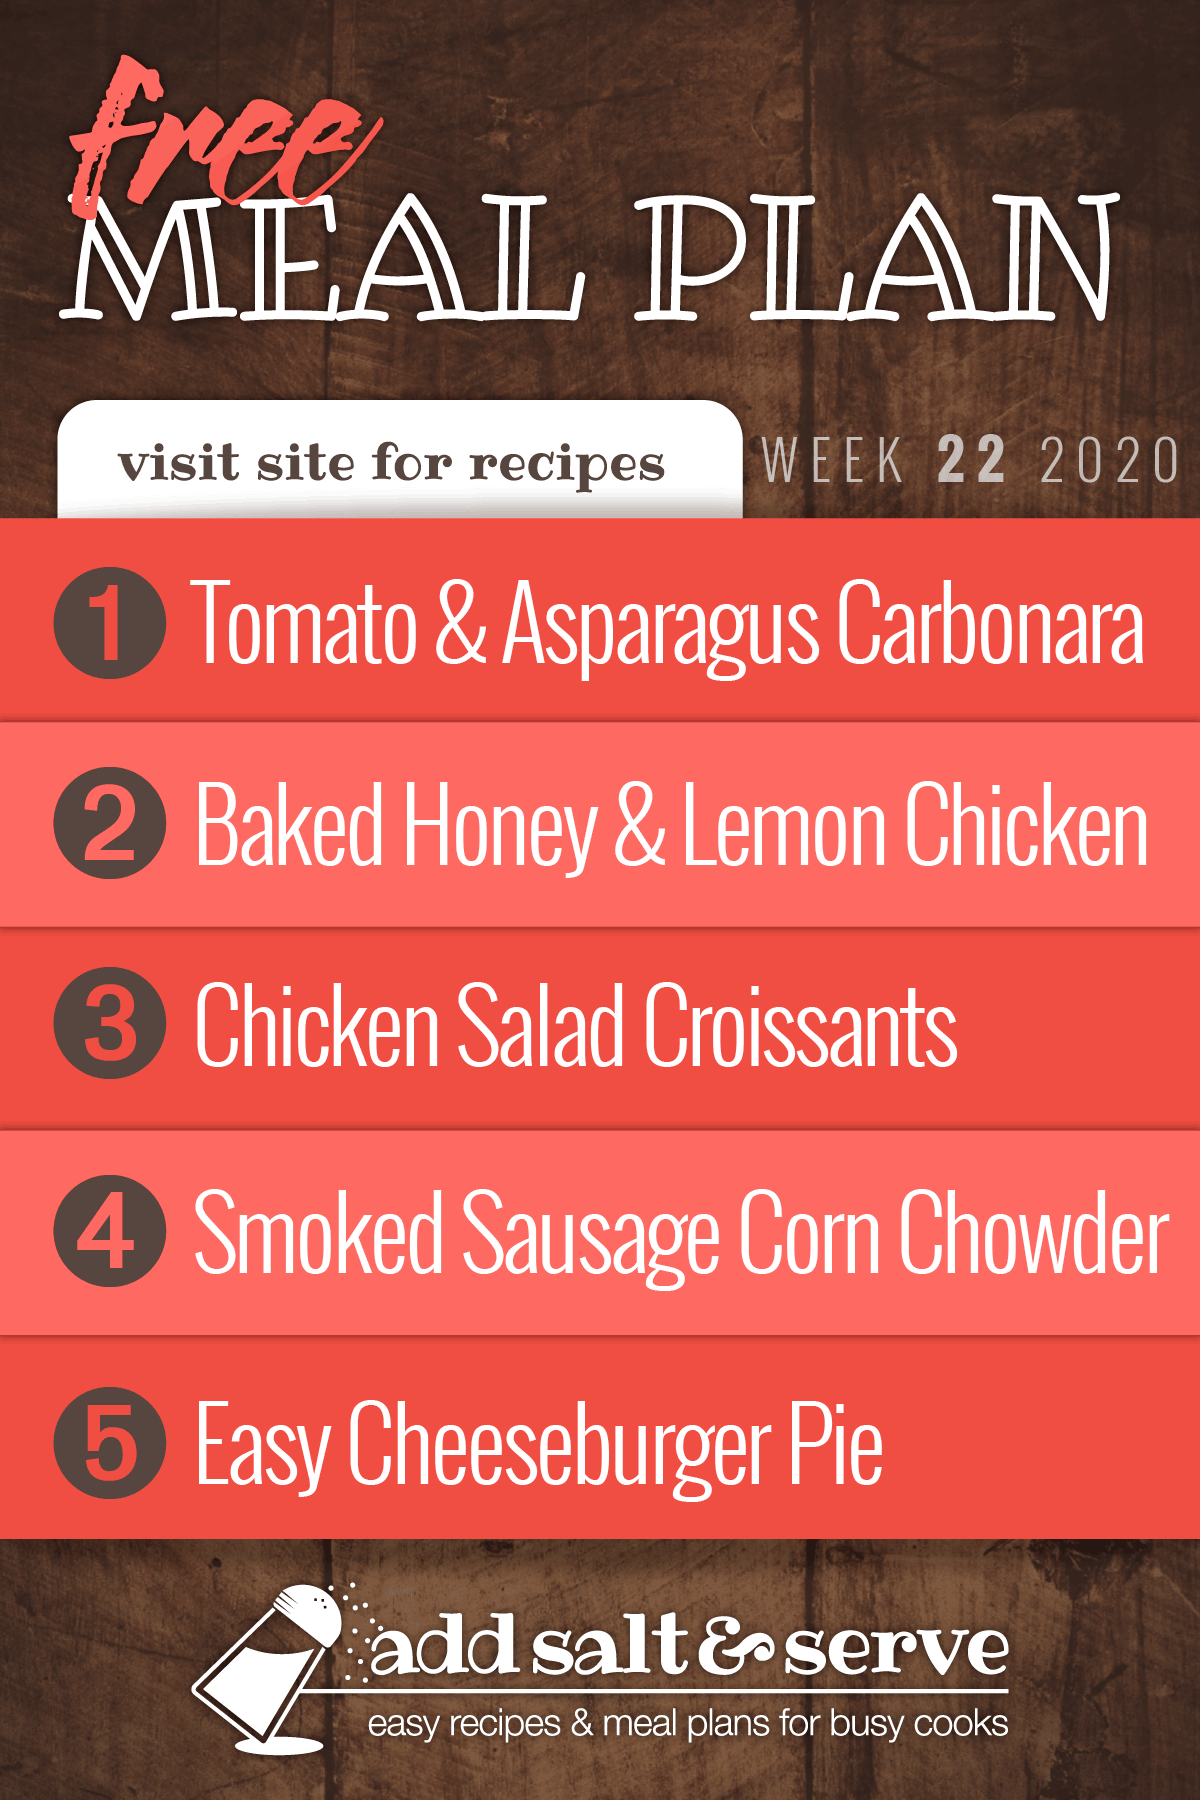 Free Meal Plan for Week 22 2020: Tomato and Asparagus Carbonara, Honey and Lemon Chicken, Chicken Salad Croissants, Smoked Sausage Corn Chowder, Easy Cheeseburger Pie